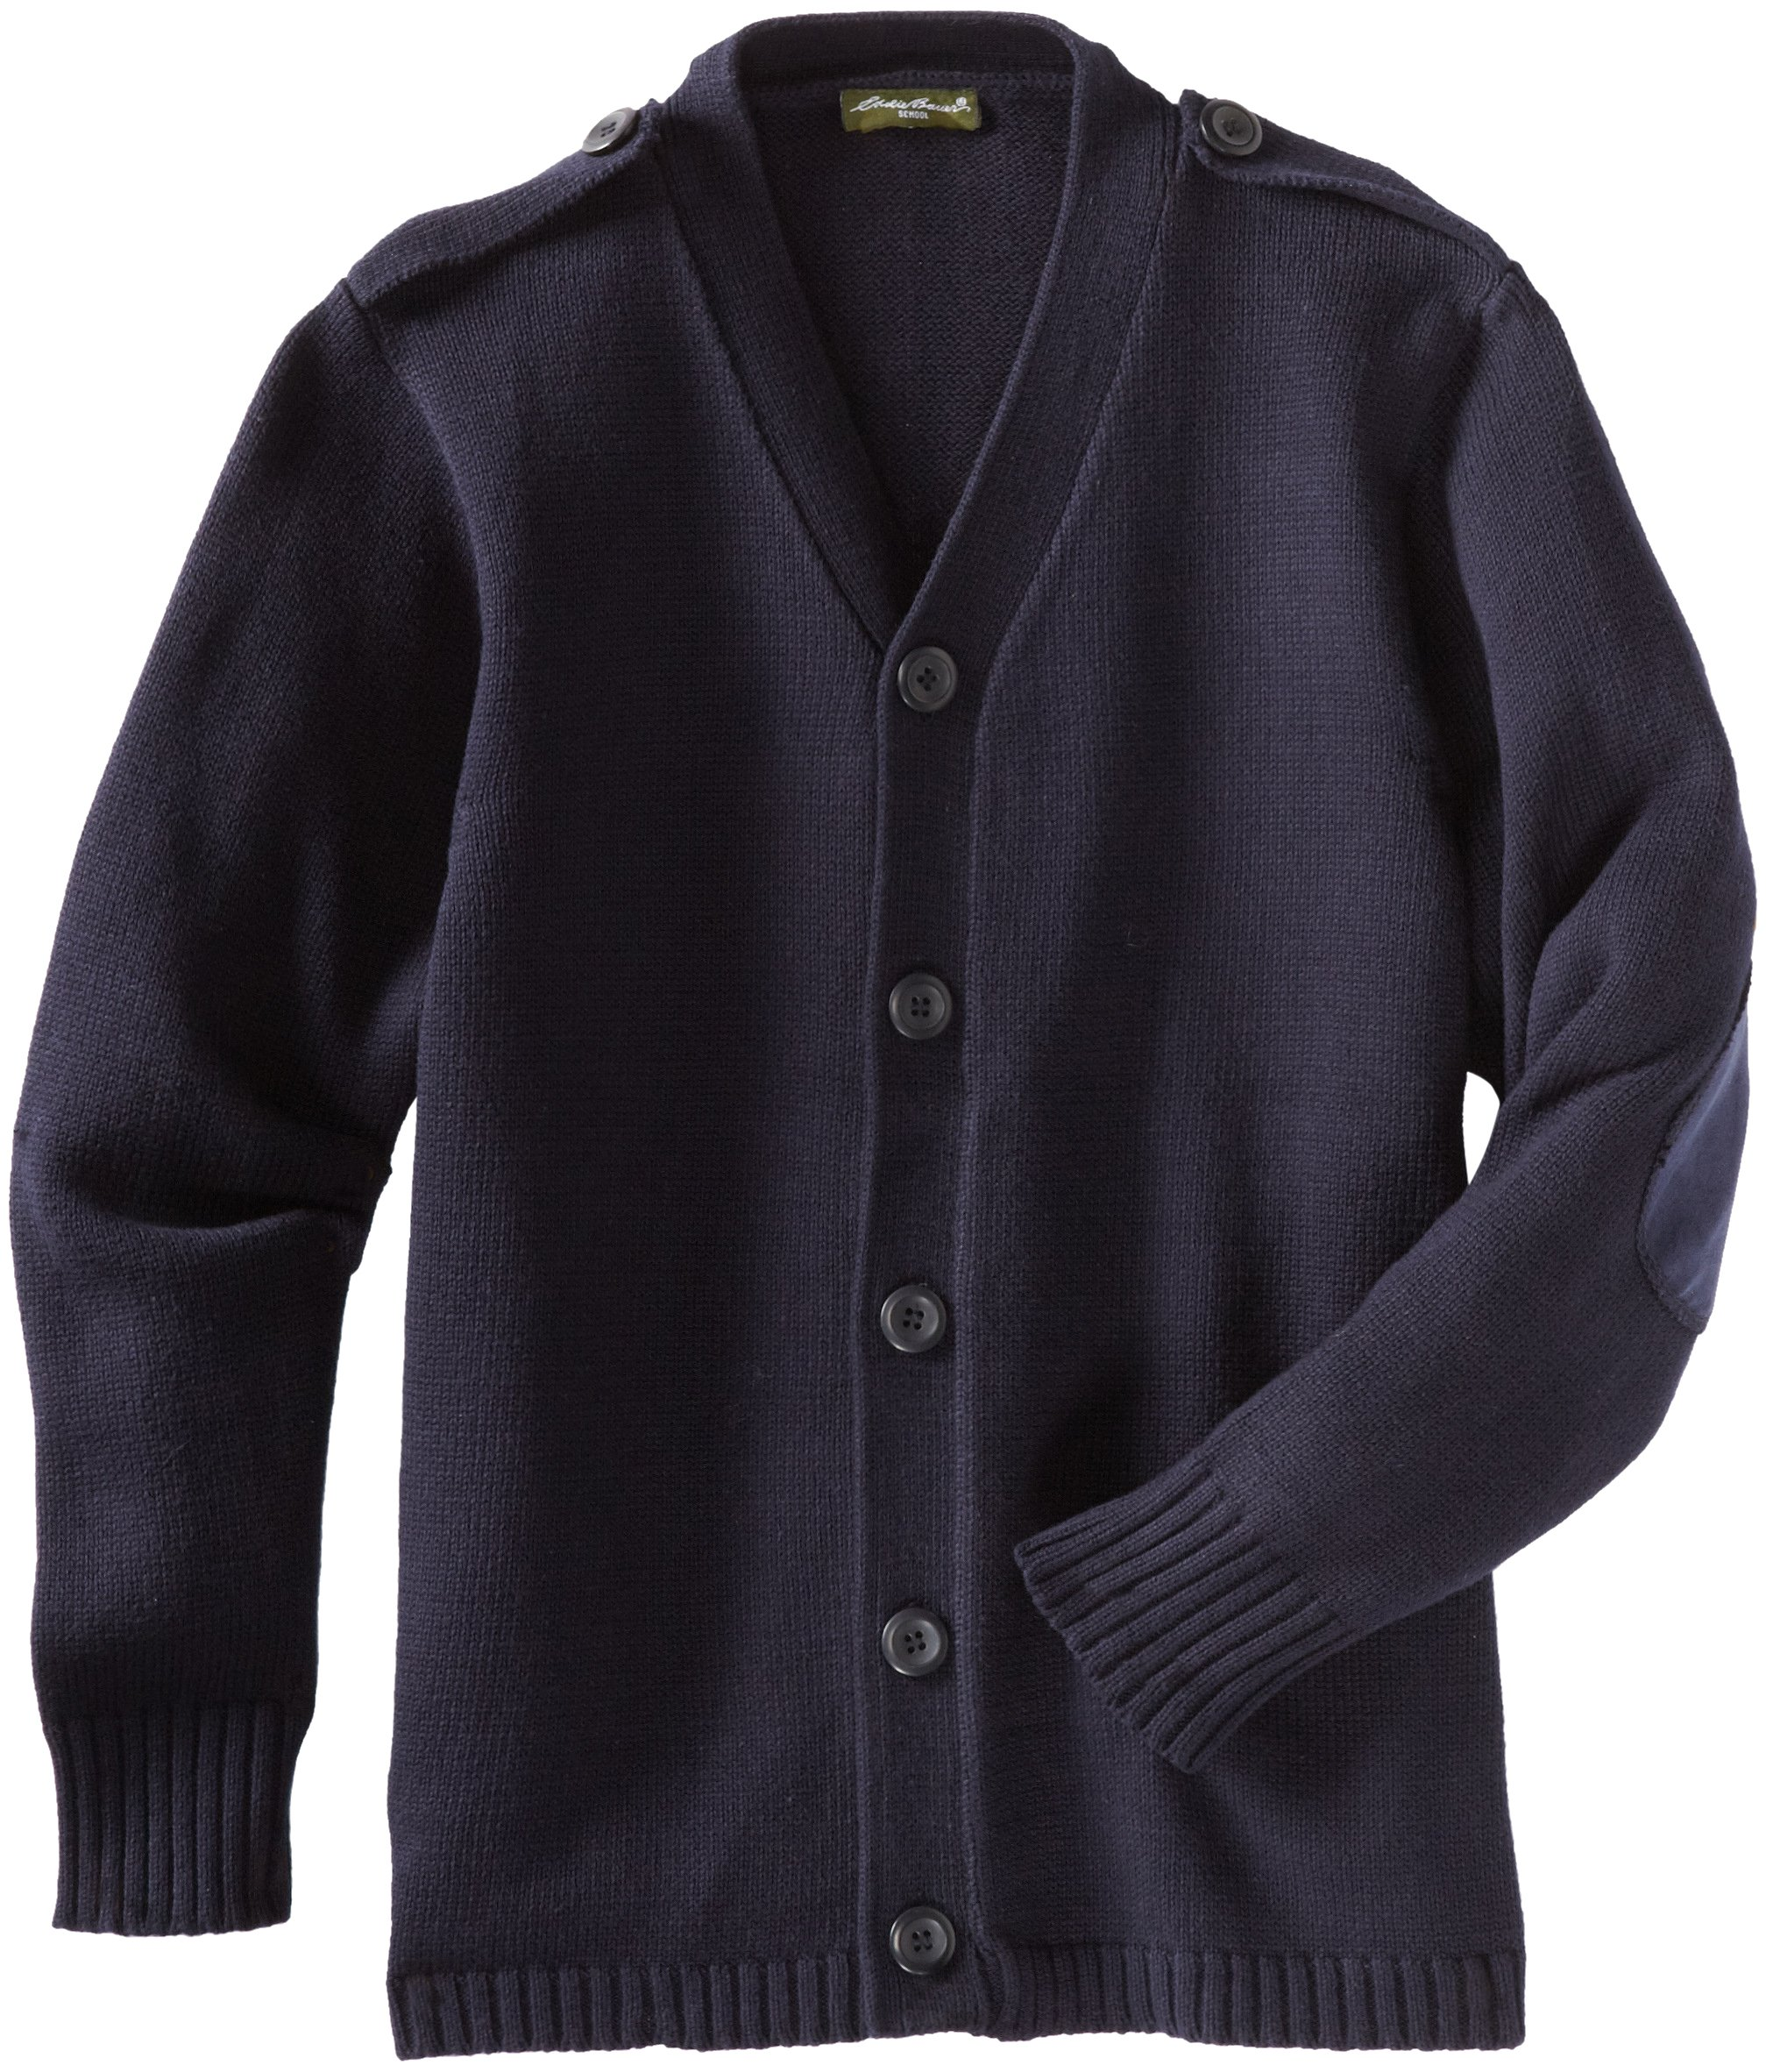 Eddie Bauer Big Boys' Sweater (More Styles Available), Basic Navy, 14/16